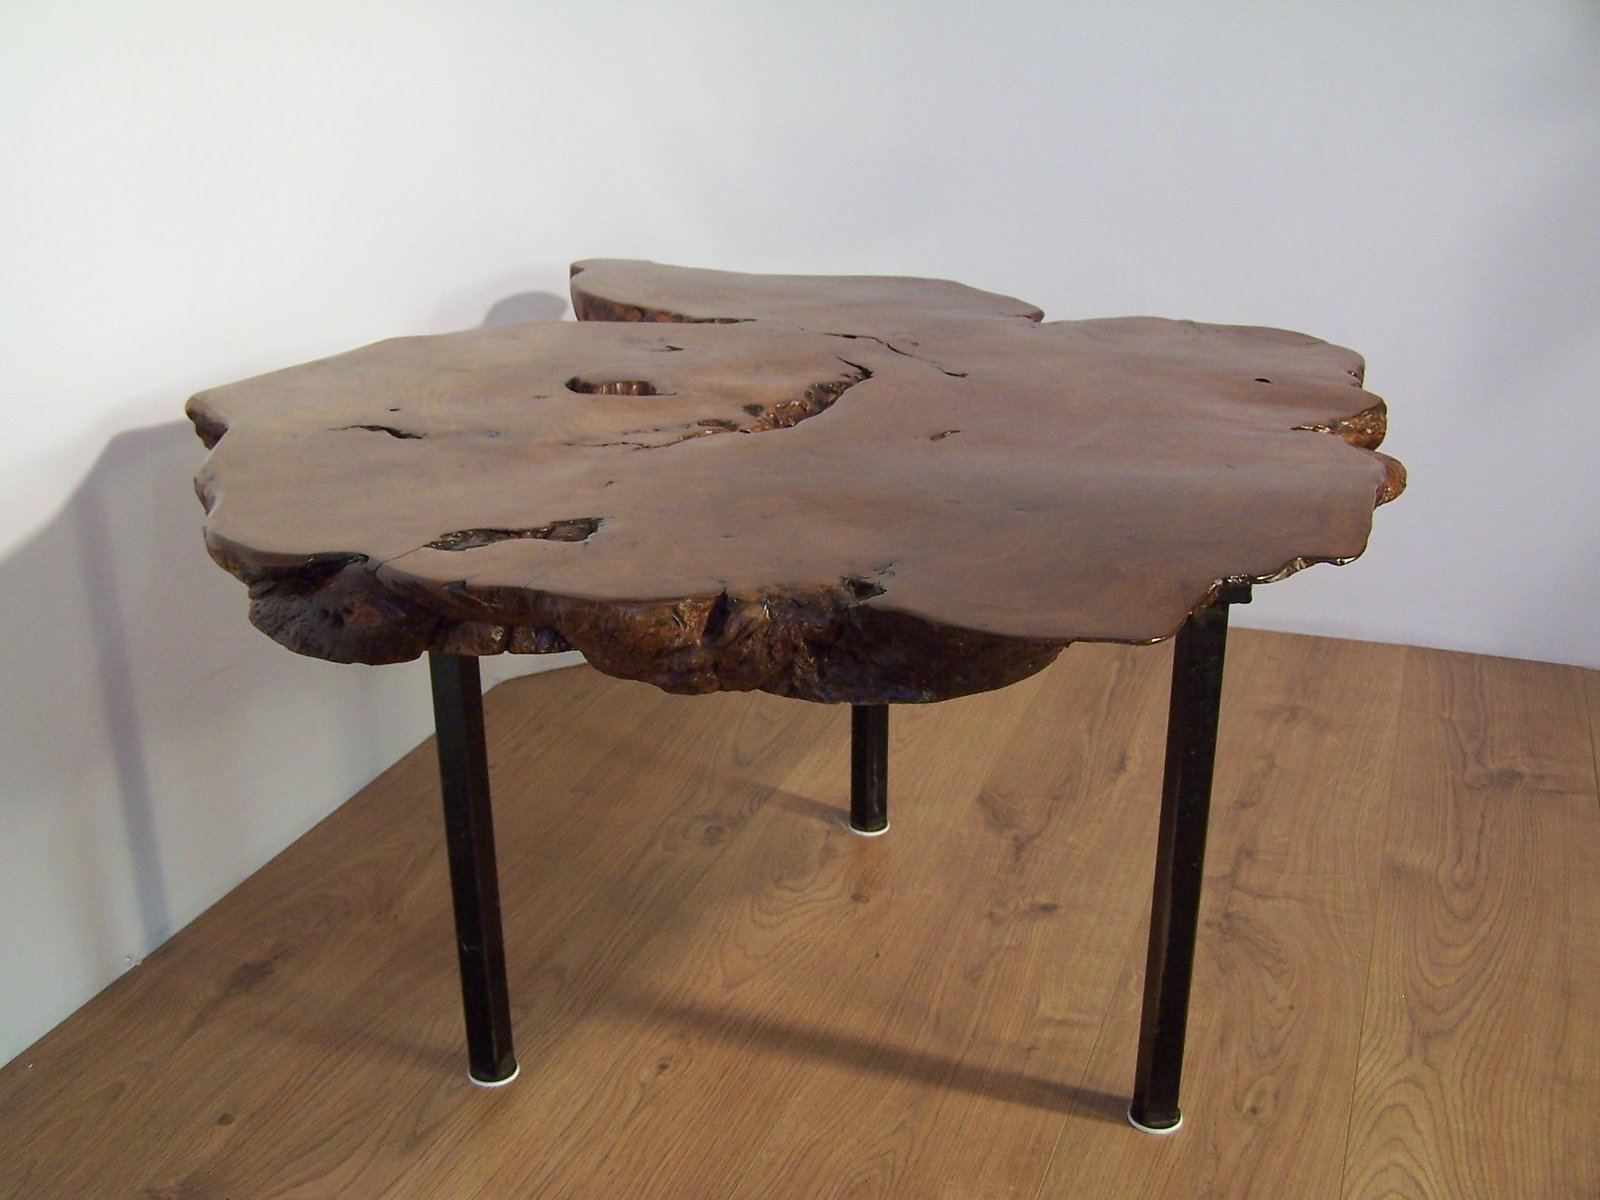 Table basse tronc d 39 arbre en orme en vente sur pamono for Table plateau tronc d arbre